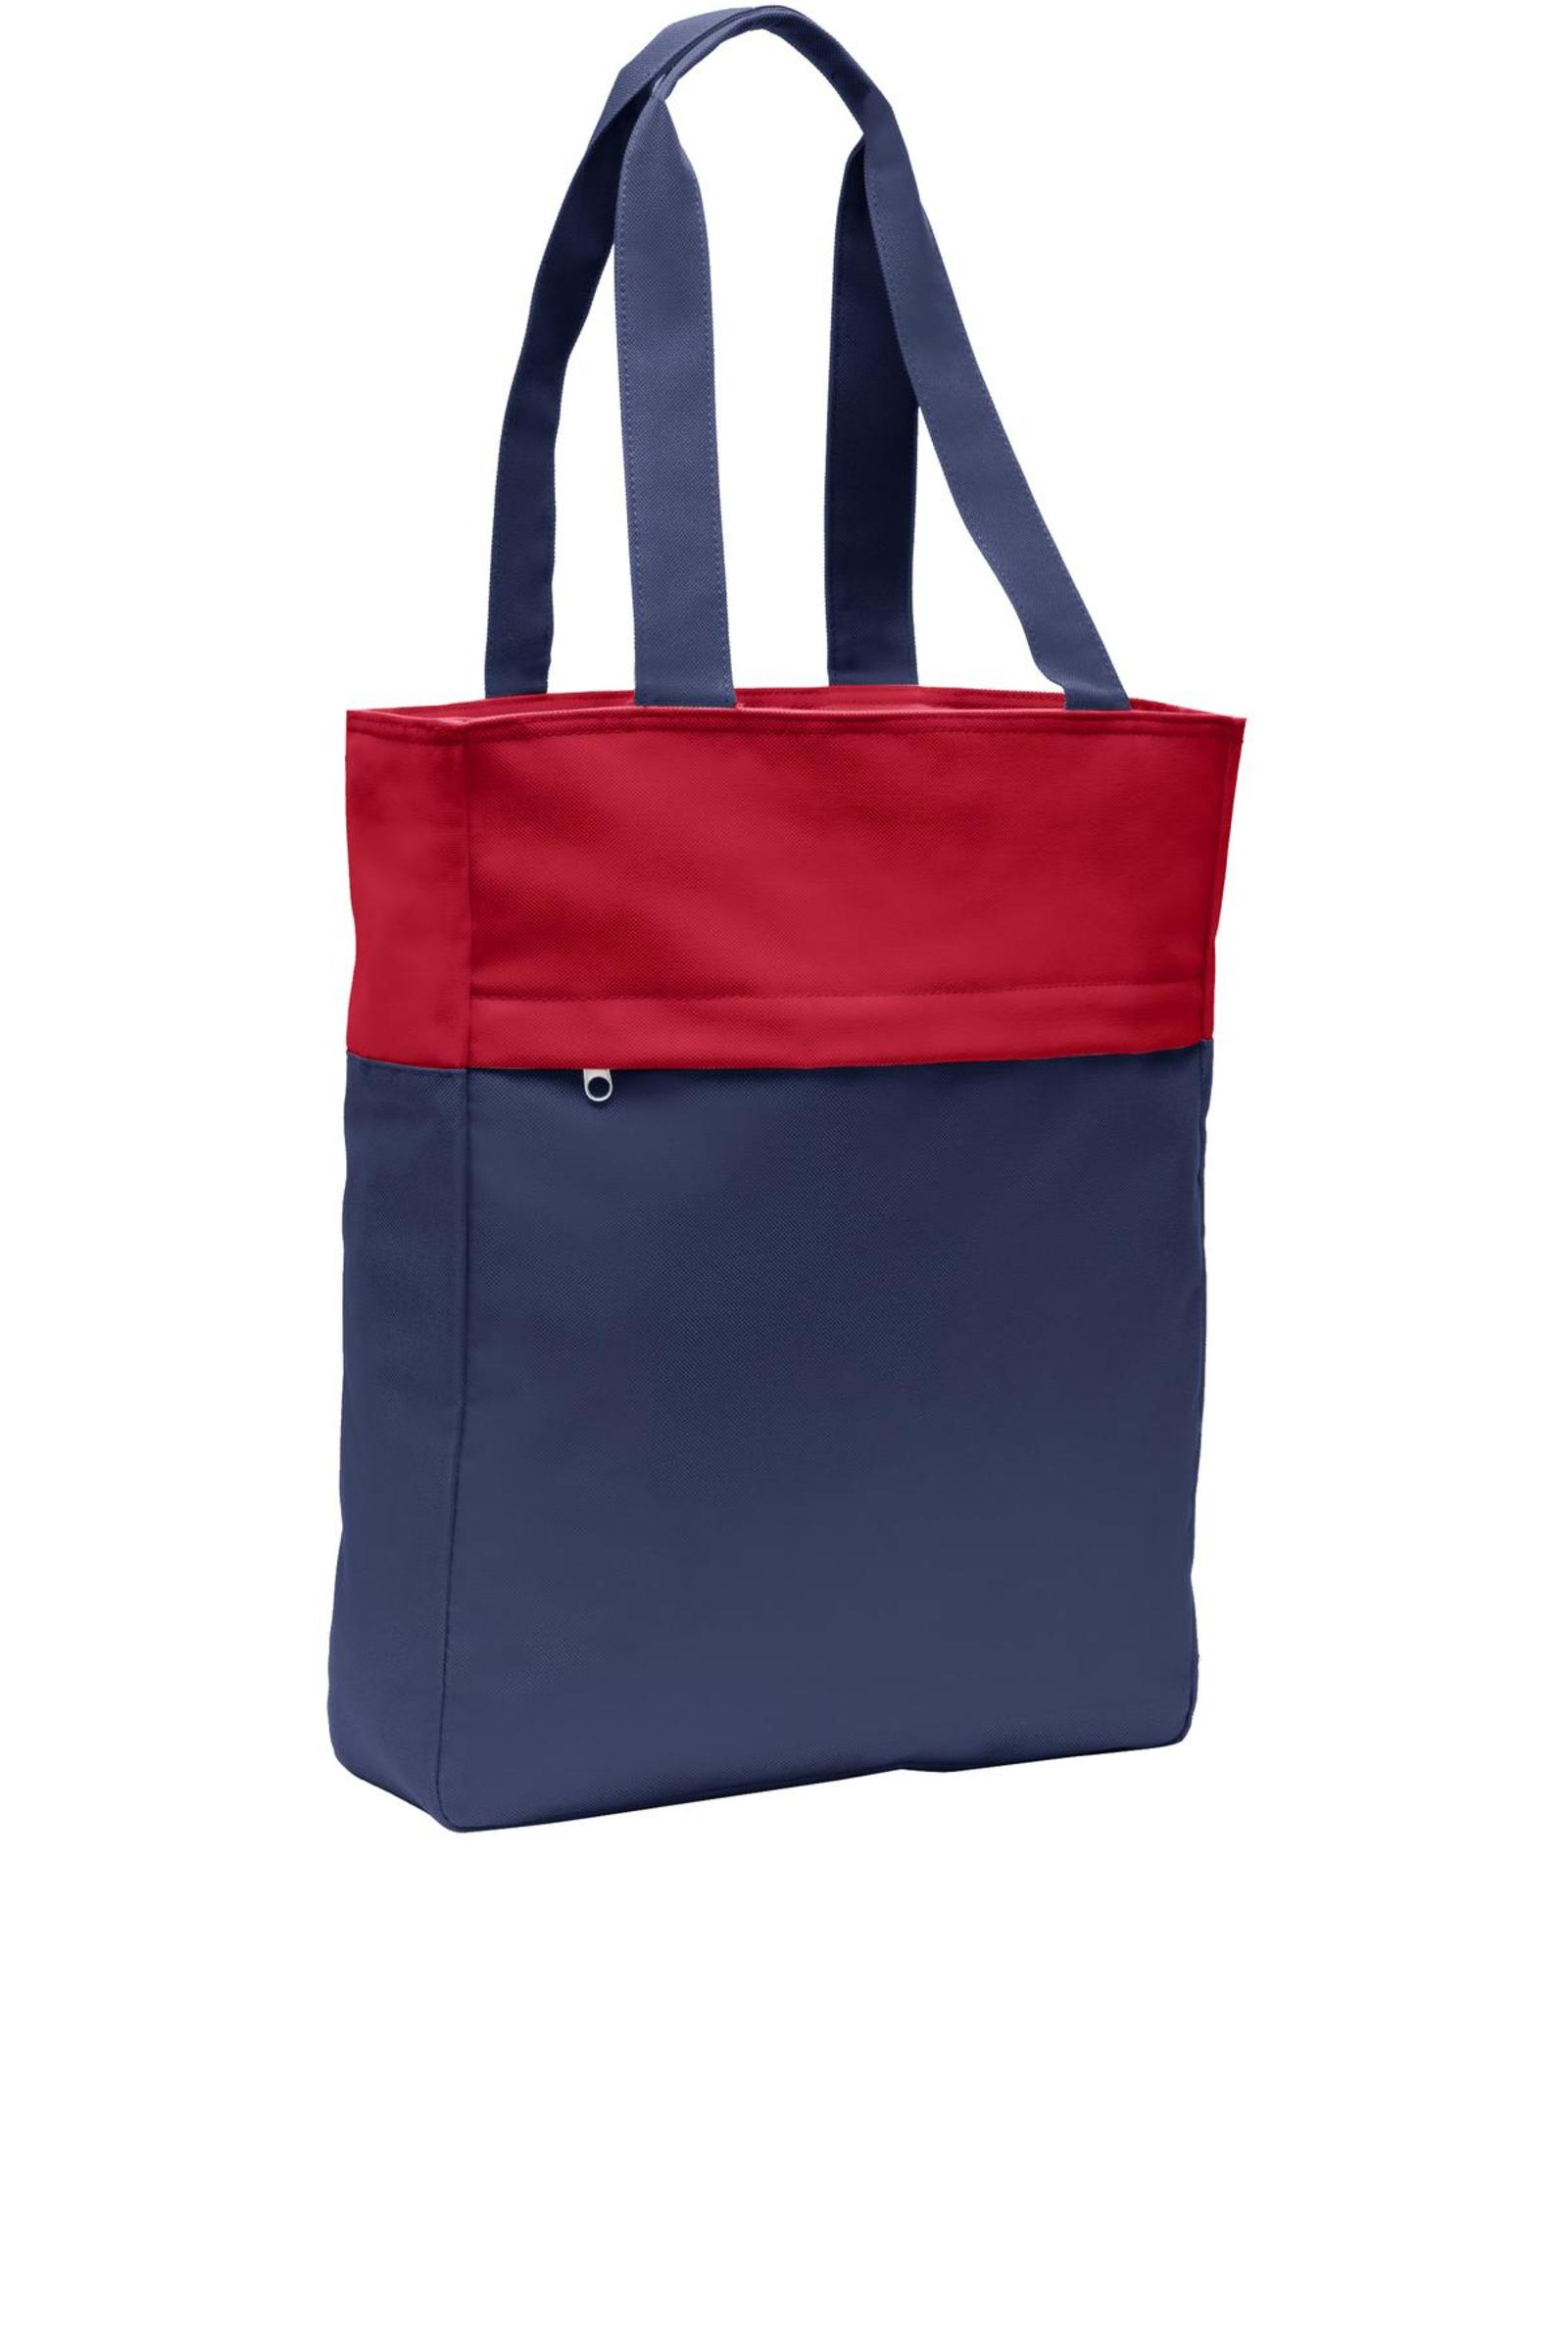 Port Authority Colorblock Tote